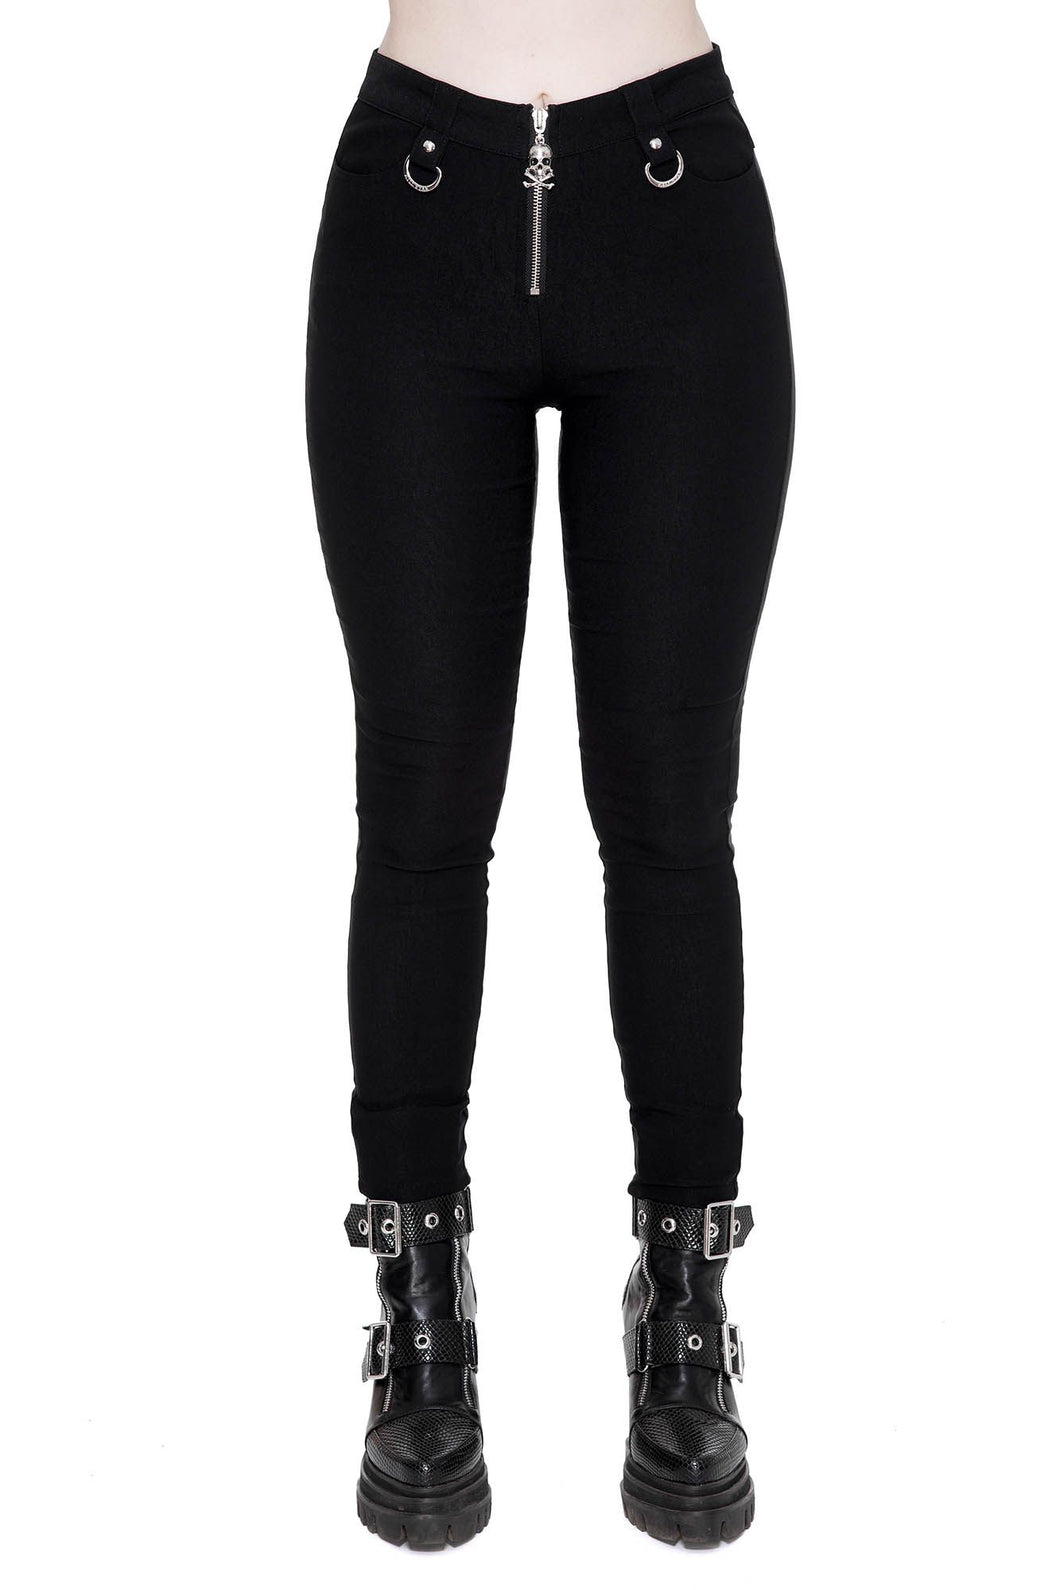 Killstar Jessie Capri Trousers - Kate's Clothing